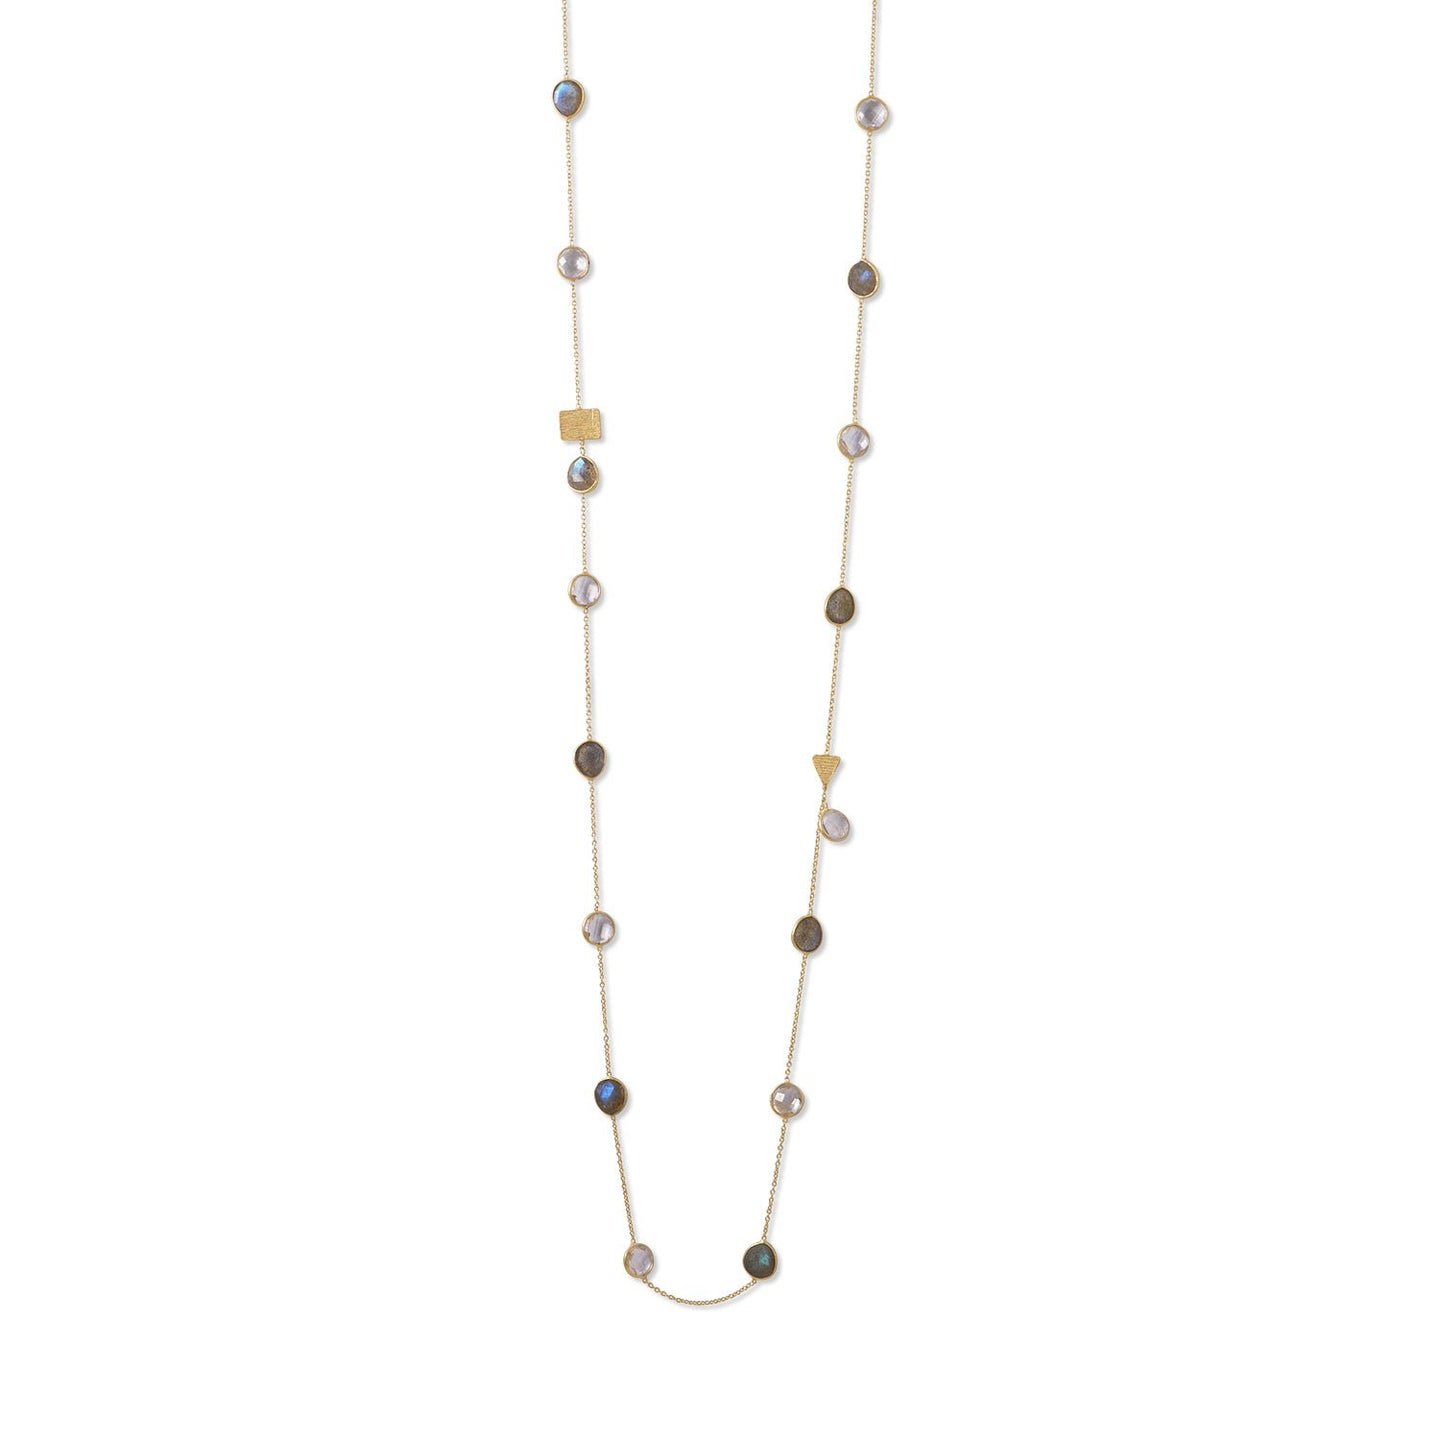 Gold Plated Labradorite and Clear Quartz Endless Necklace - the-southern-magnolia-too